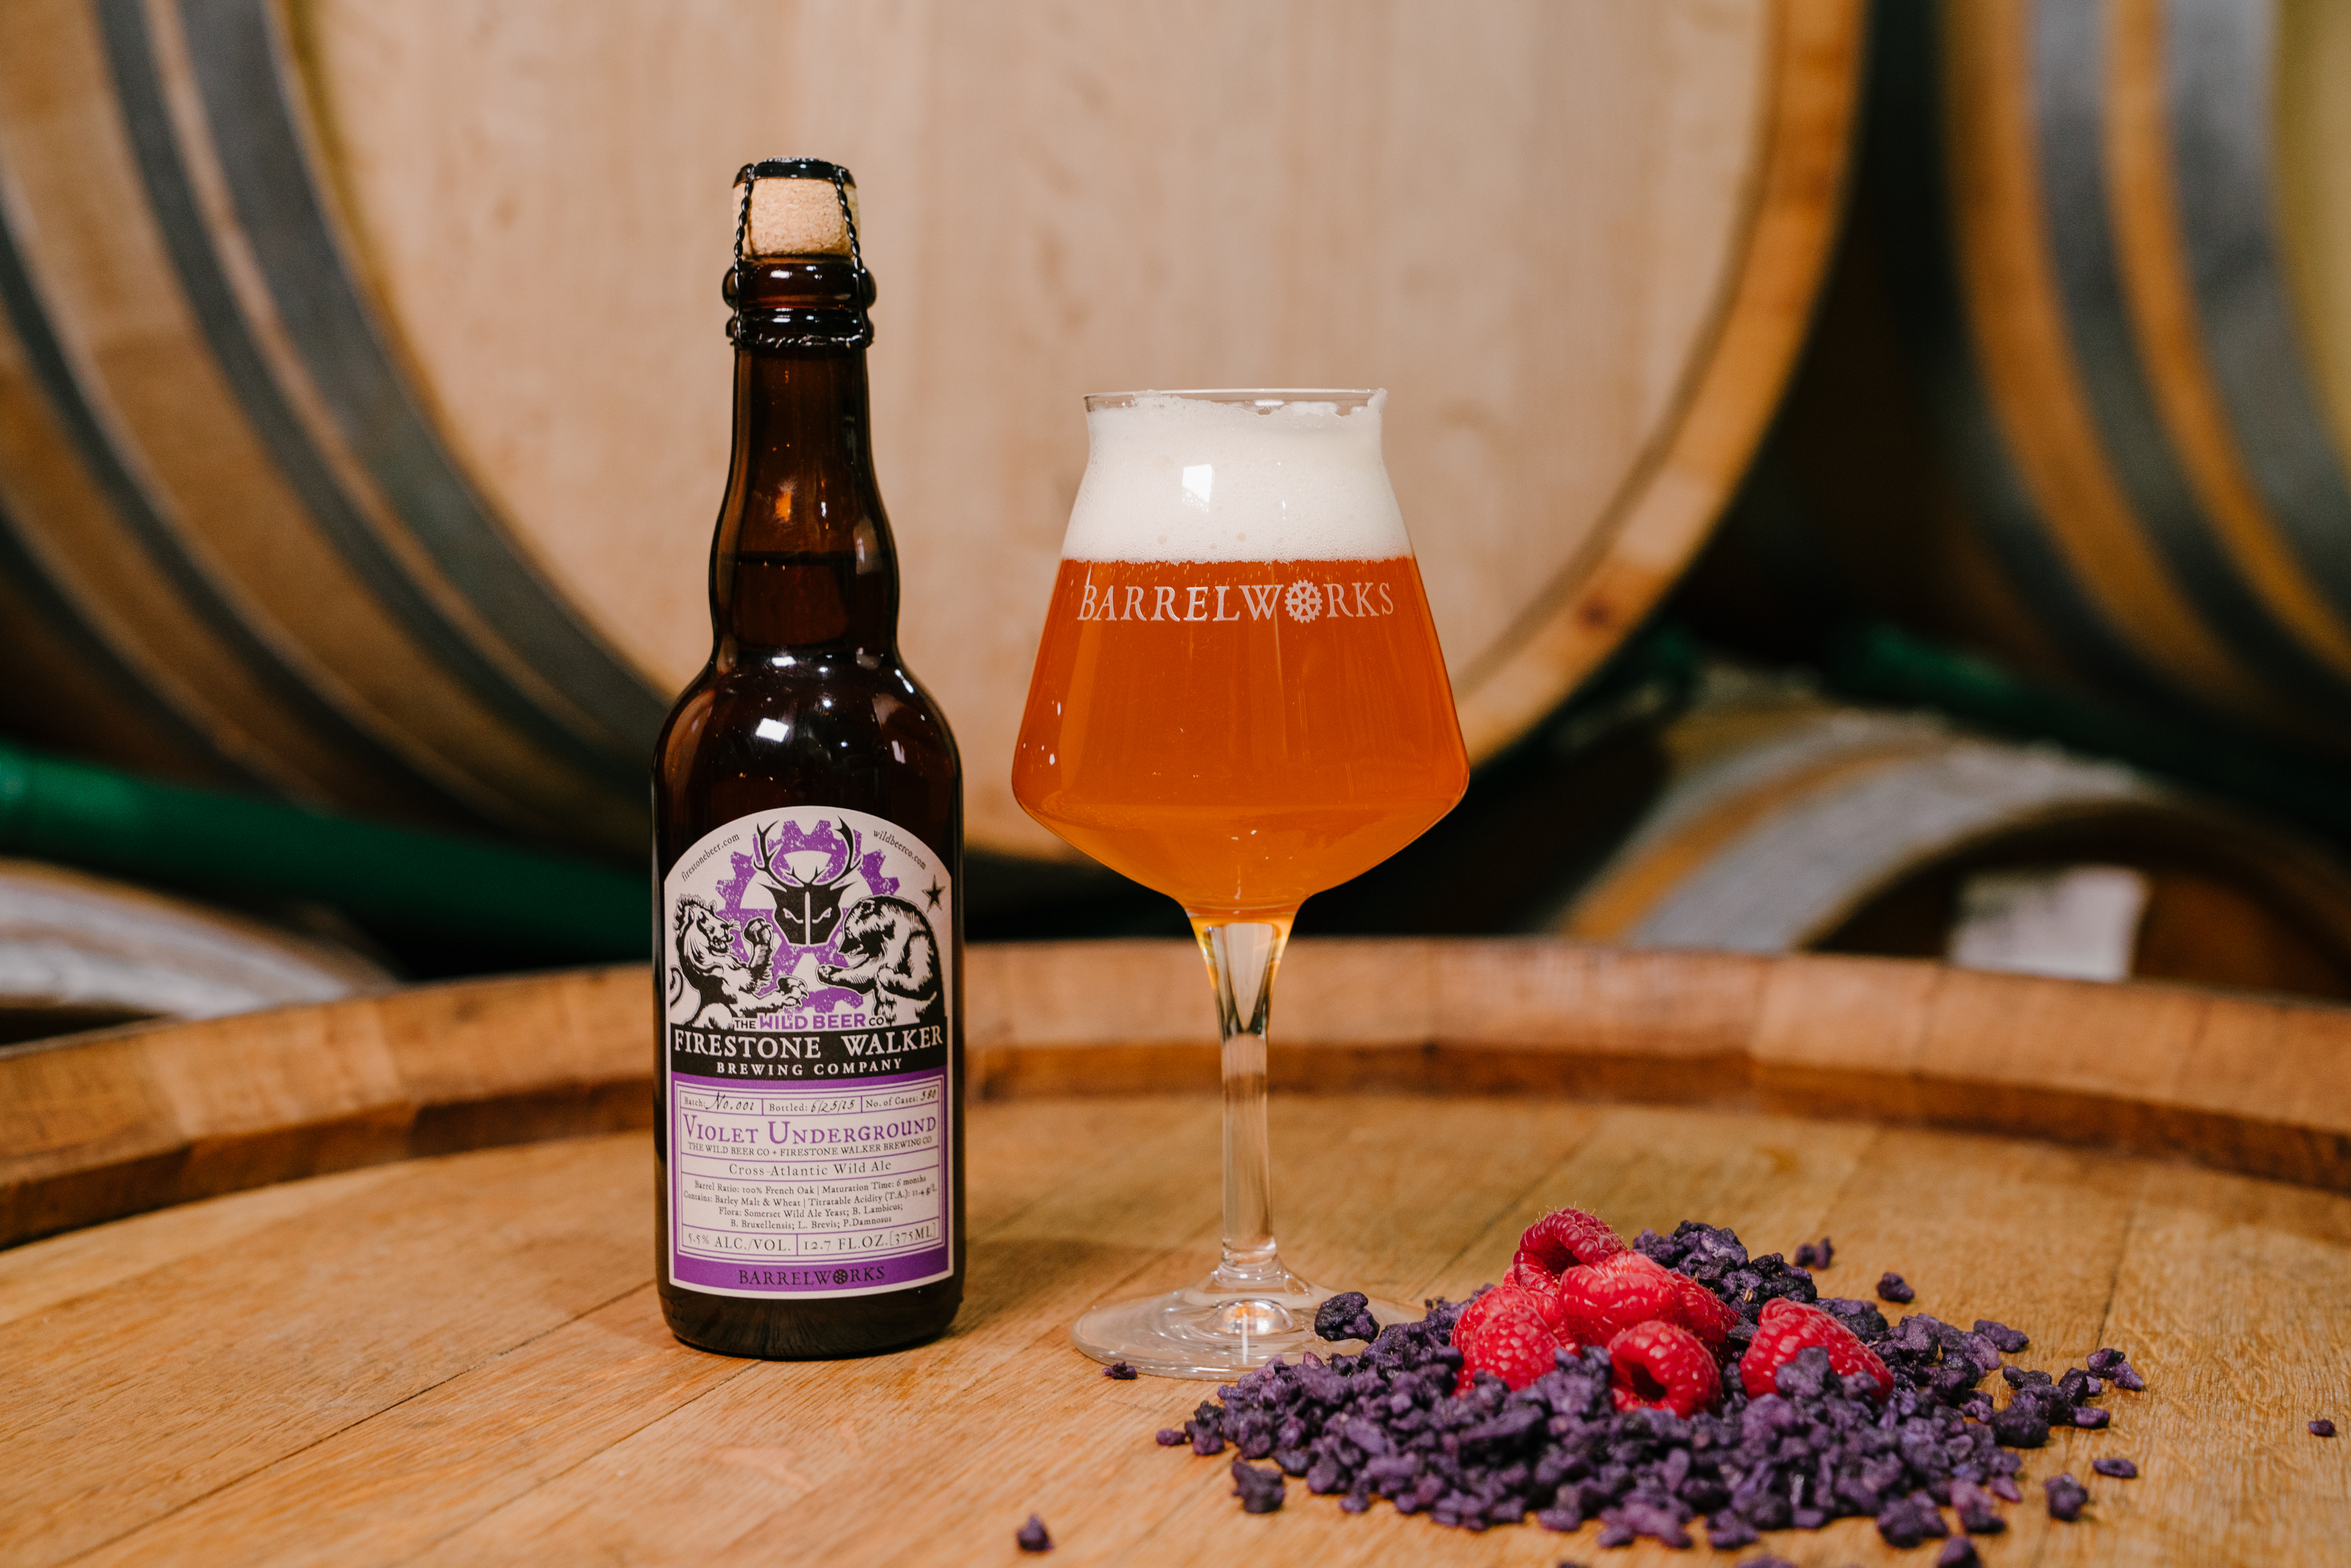 image of Violet Underground courtesy of Firestone Walker Brewing